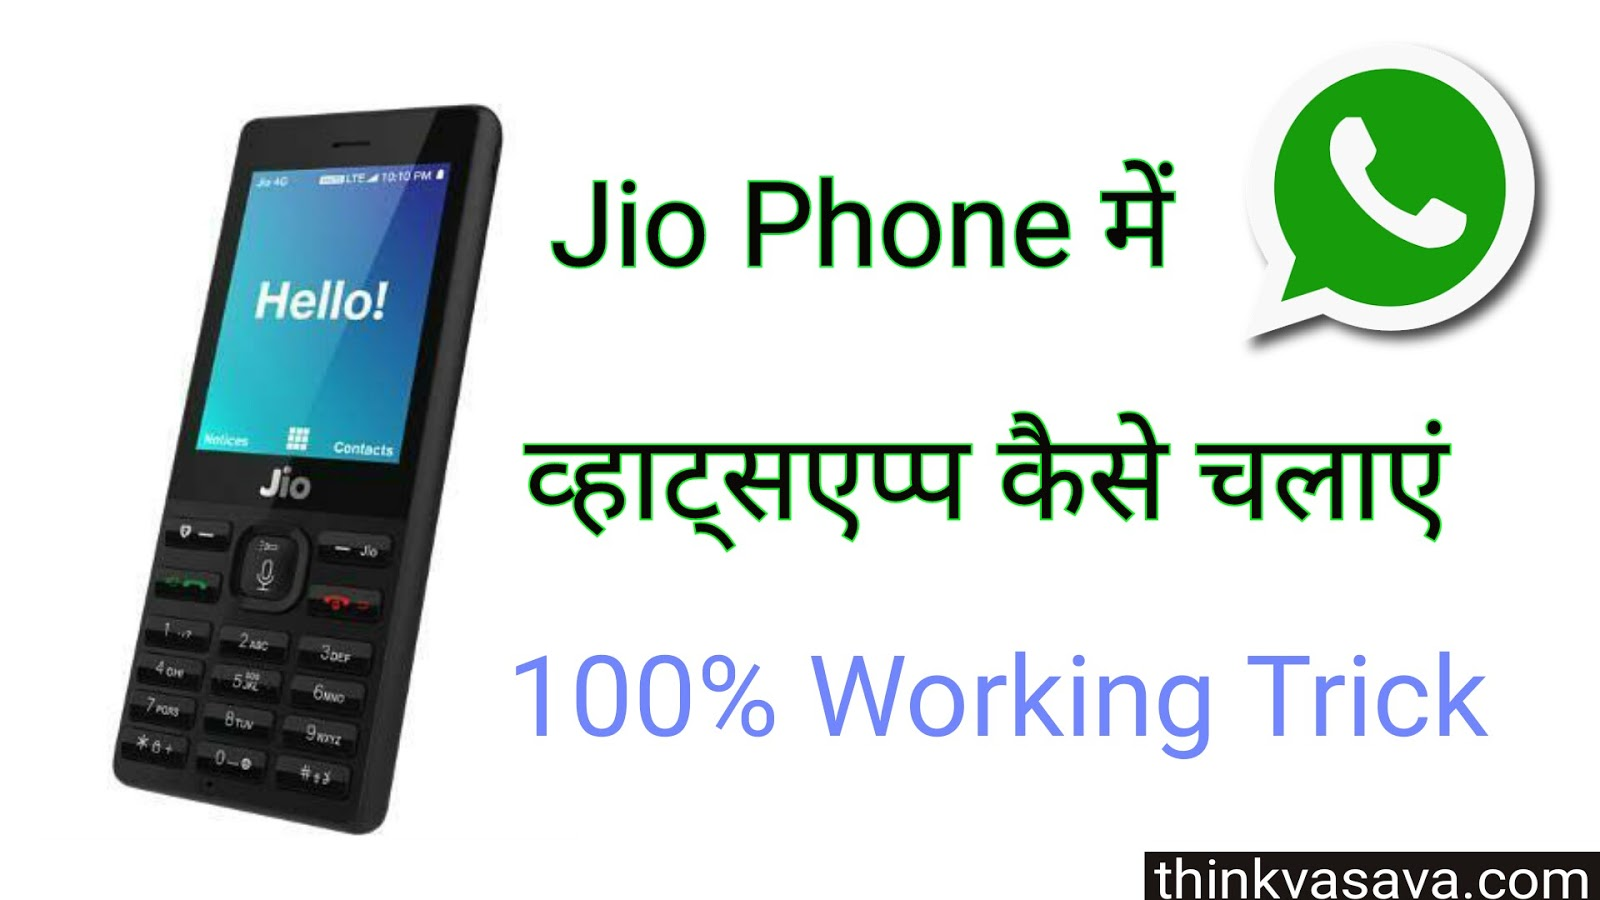 jio ke mobile mein whatsapp app kaise download kare